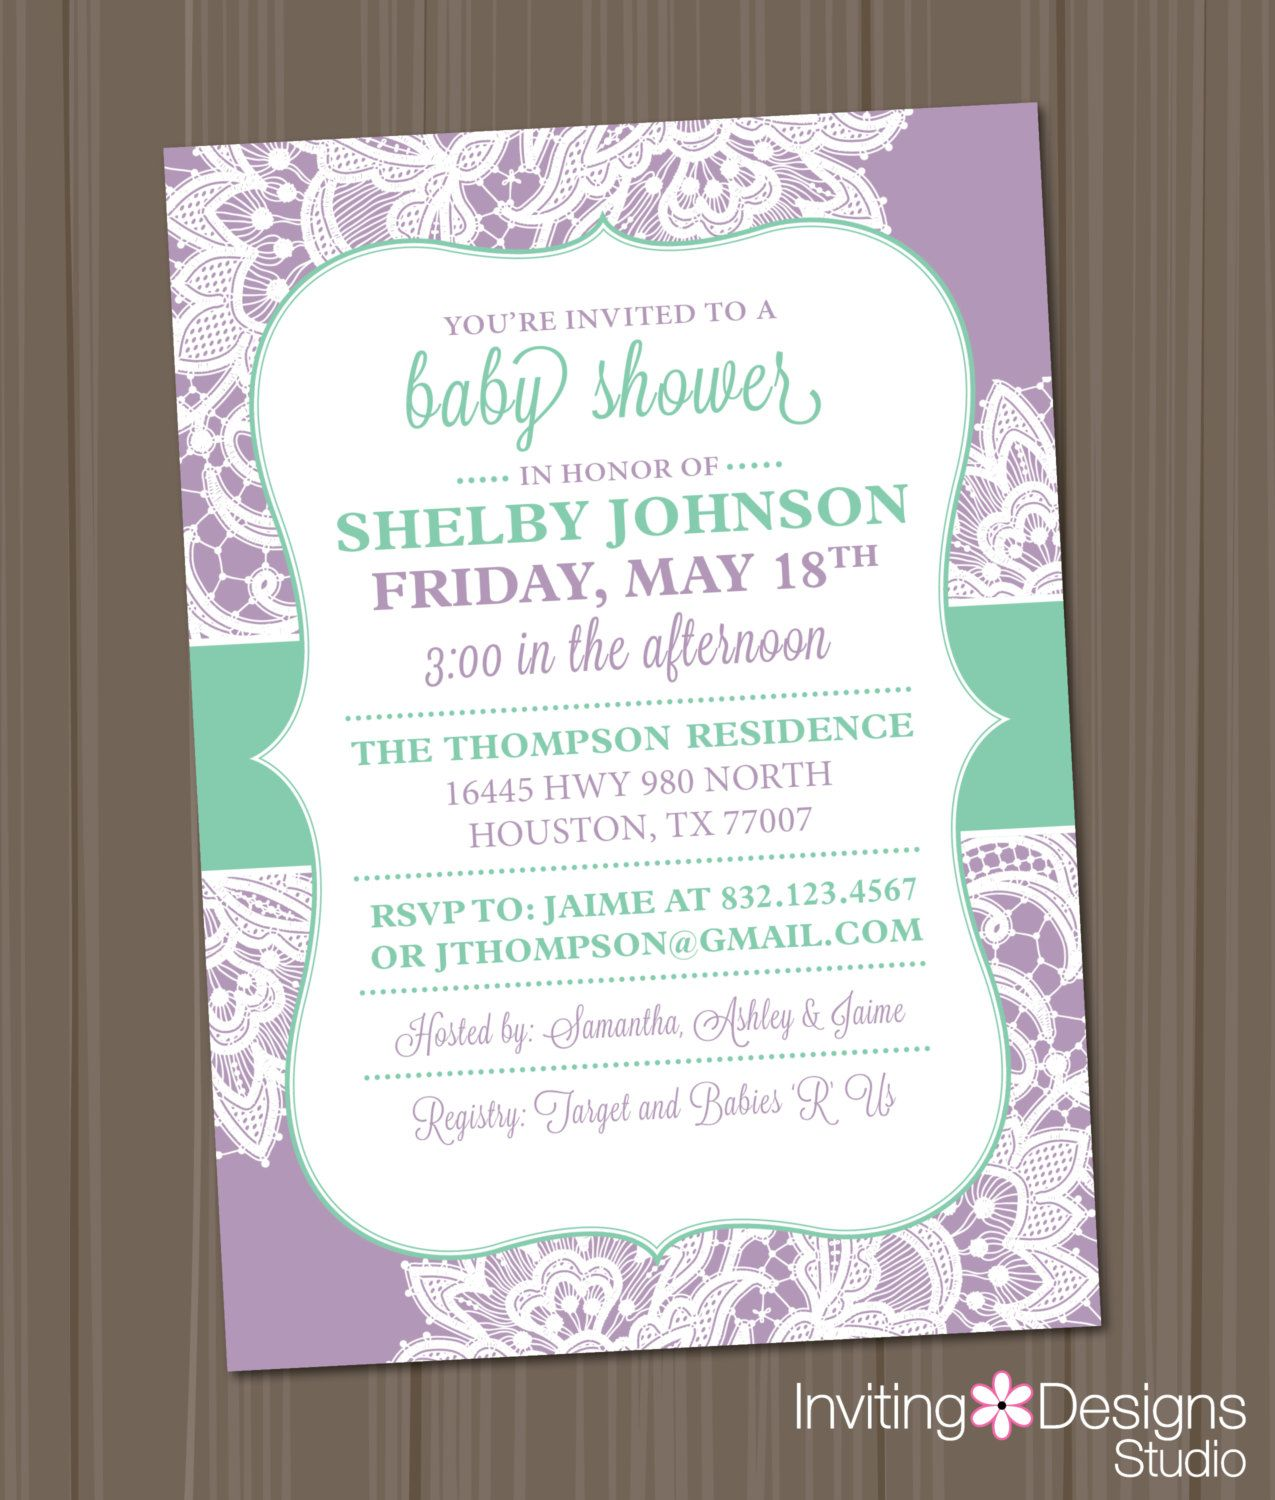 Girl baby shower invitation lace lavender purple lilac mint girl baby shower invitation lace lavender purple lilac mint green aqua vintage shabby chic printable file by invitingdesignstudio on etsy filmwisefo